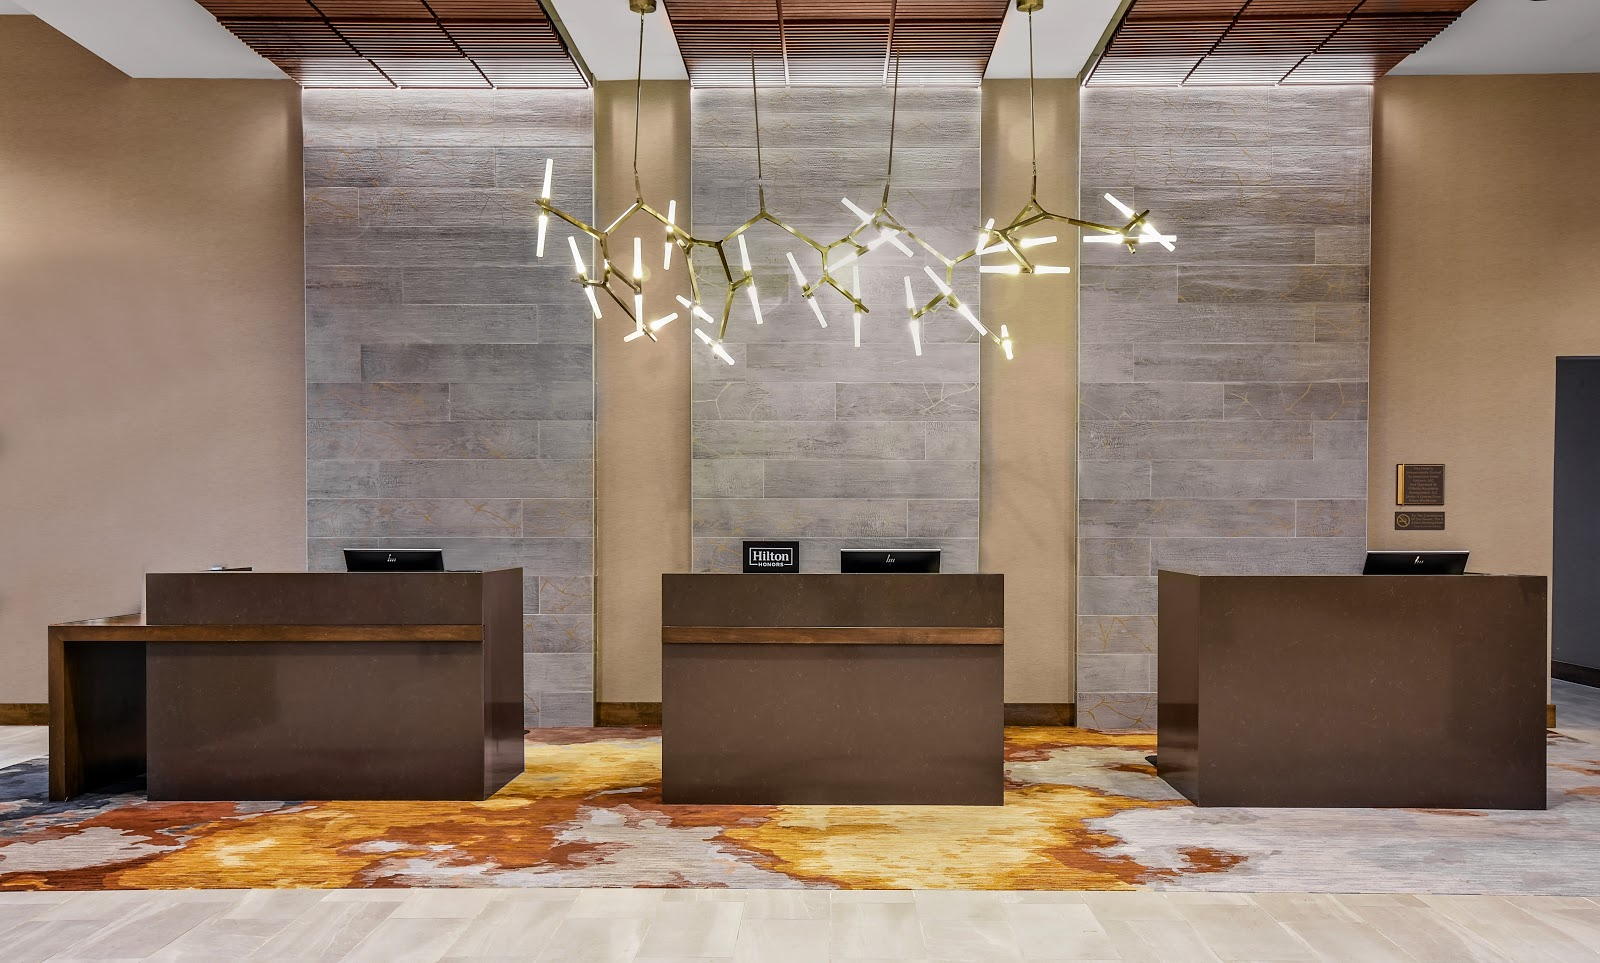 The hotel's opening reception area has a gray accent wall with gold crackle and a lighting fixture that resembles modern tree branches.